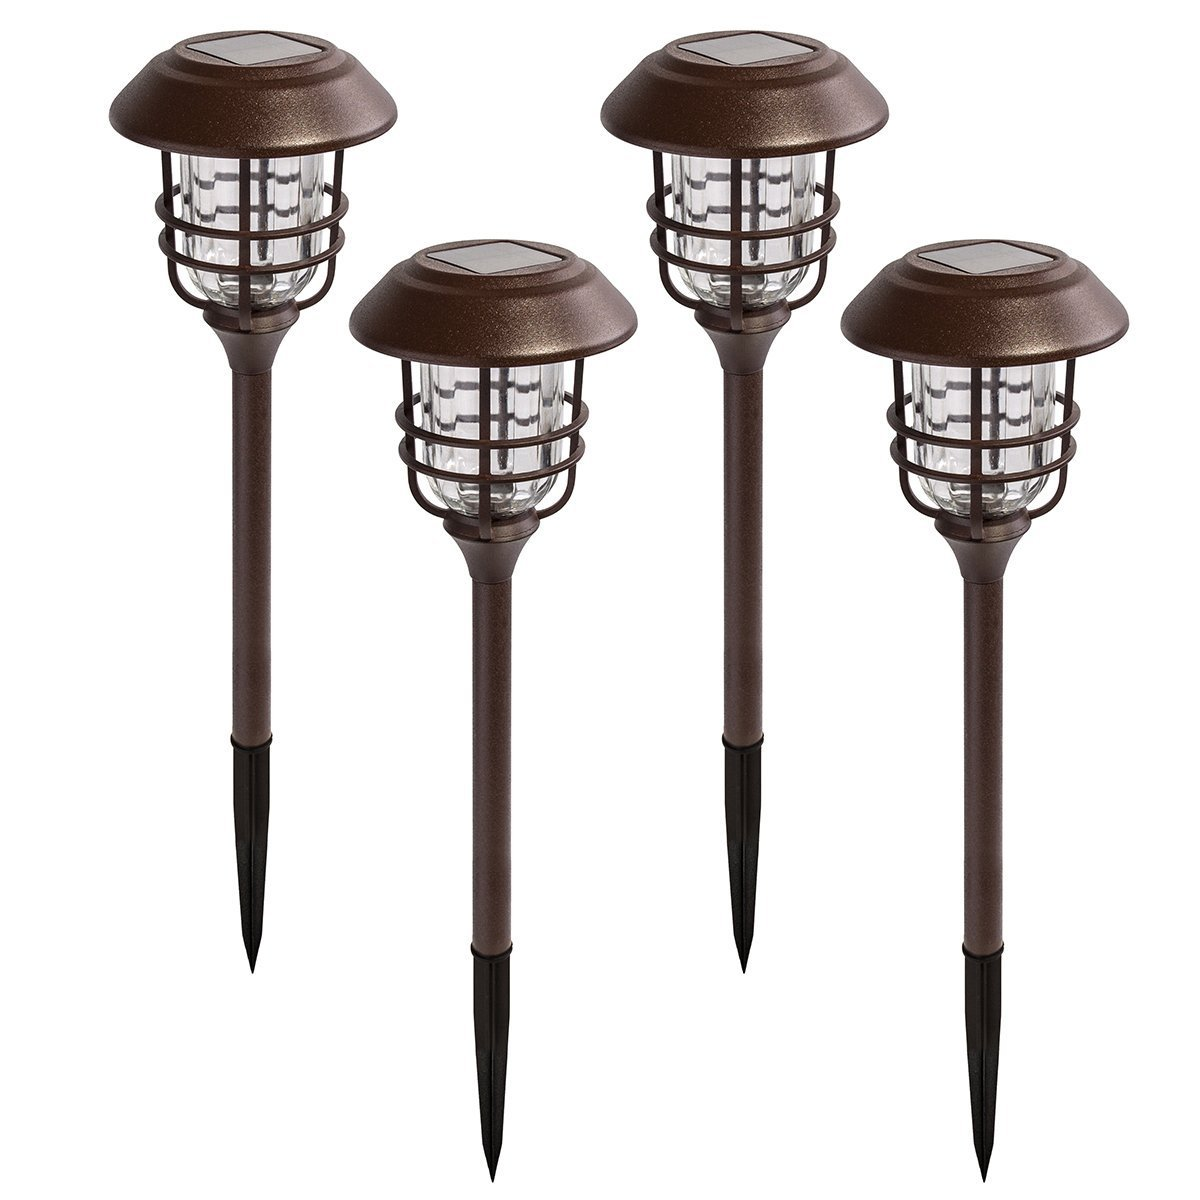 GIGALUMI 4 Pack Outdoor Solar Lights, Glass and Powder Coated Cast Aluminum Metal Path Lights, High Lumen Output per LED, Easy No Wire Installation